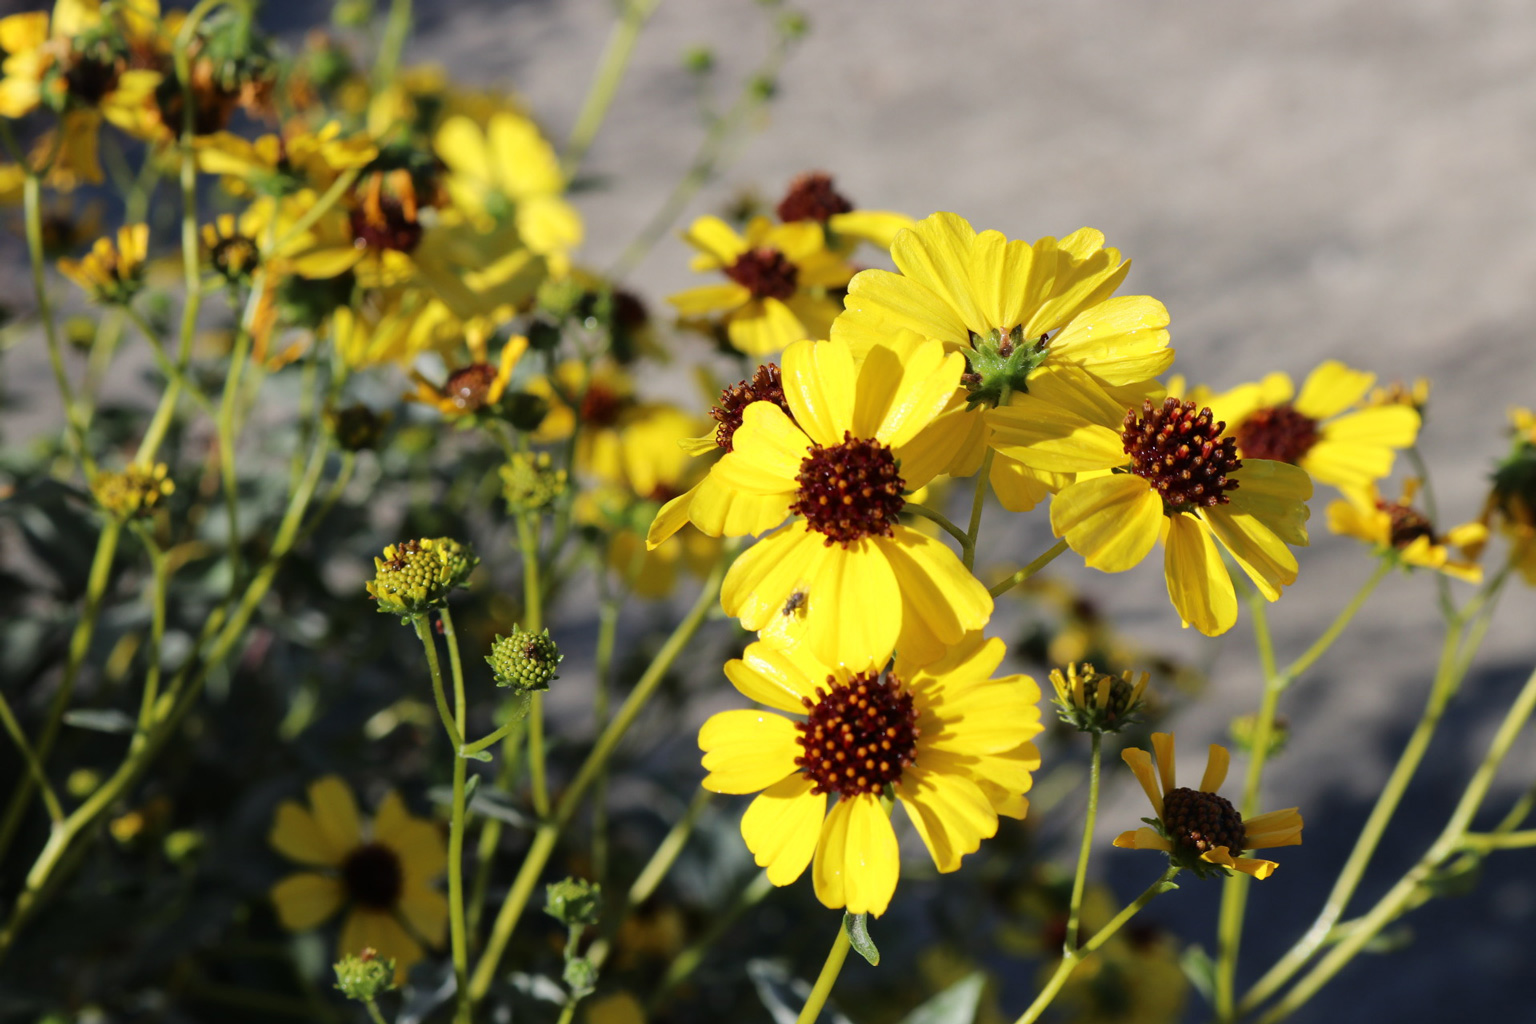 Several yellow Brittlebush flowers bloom.